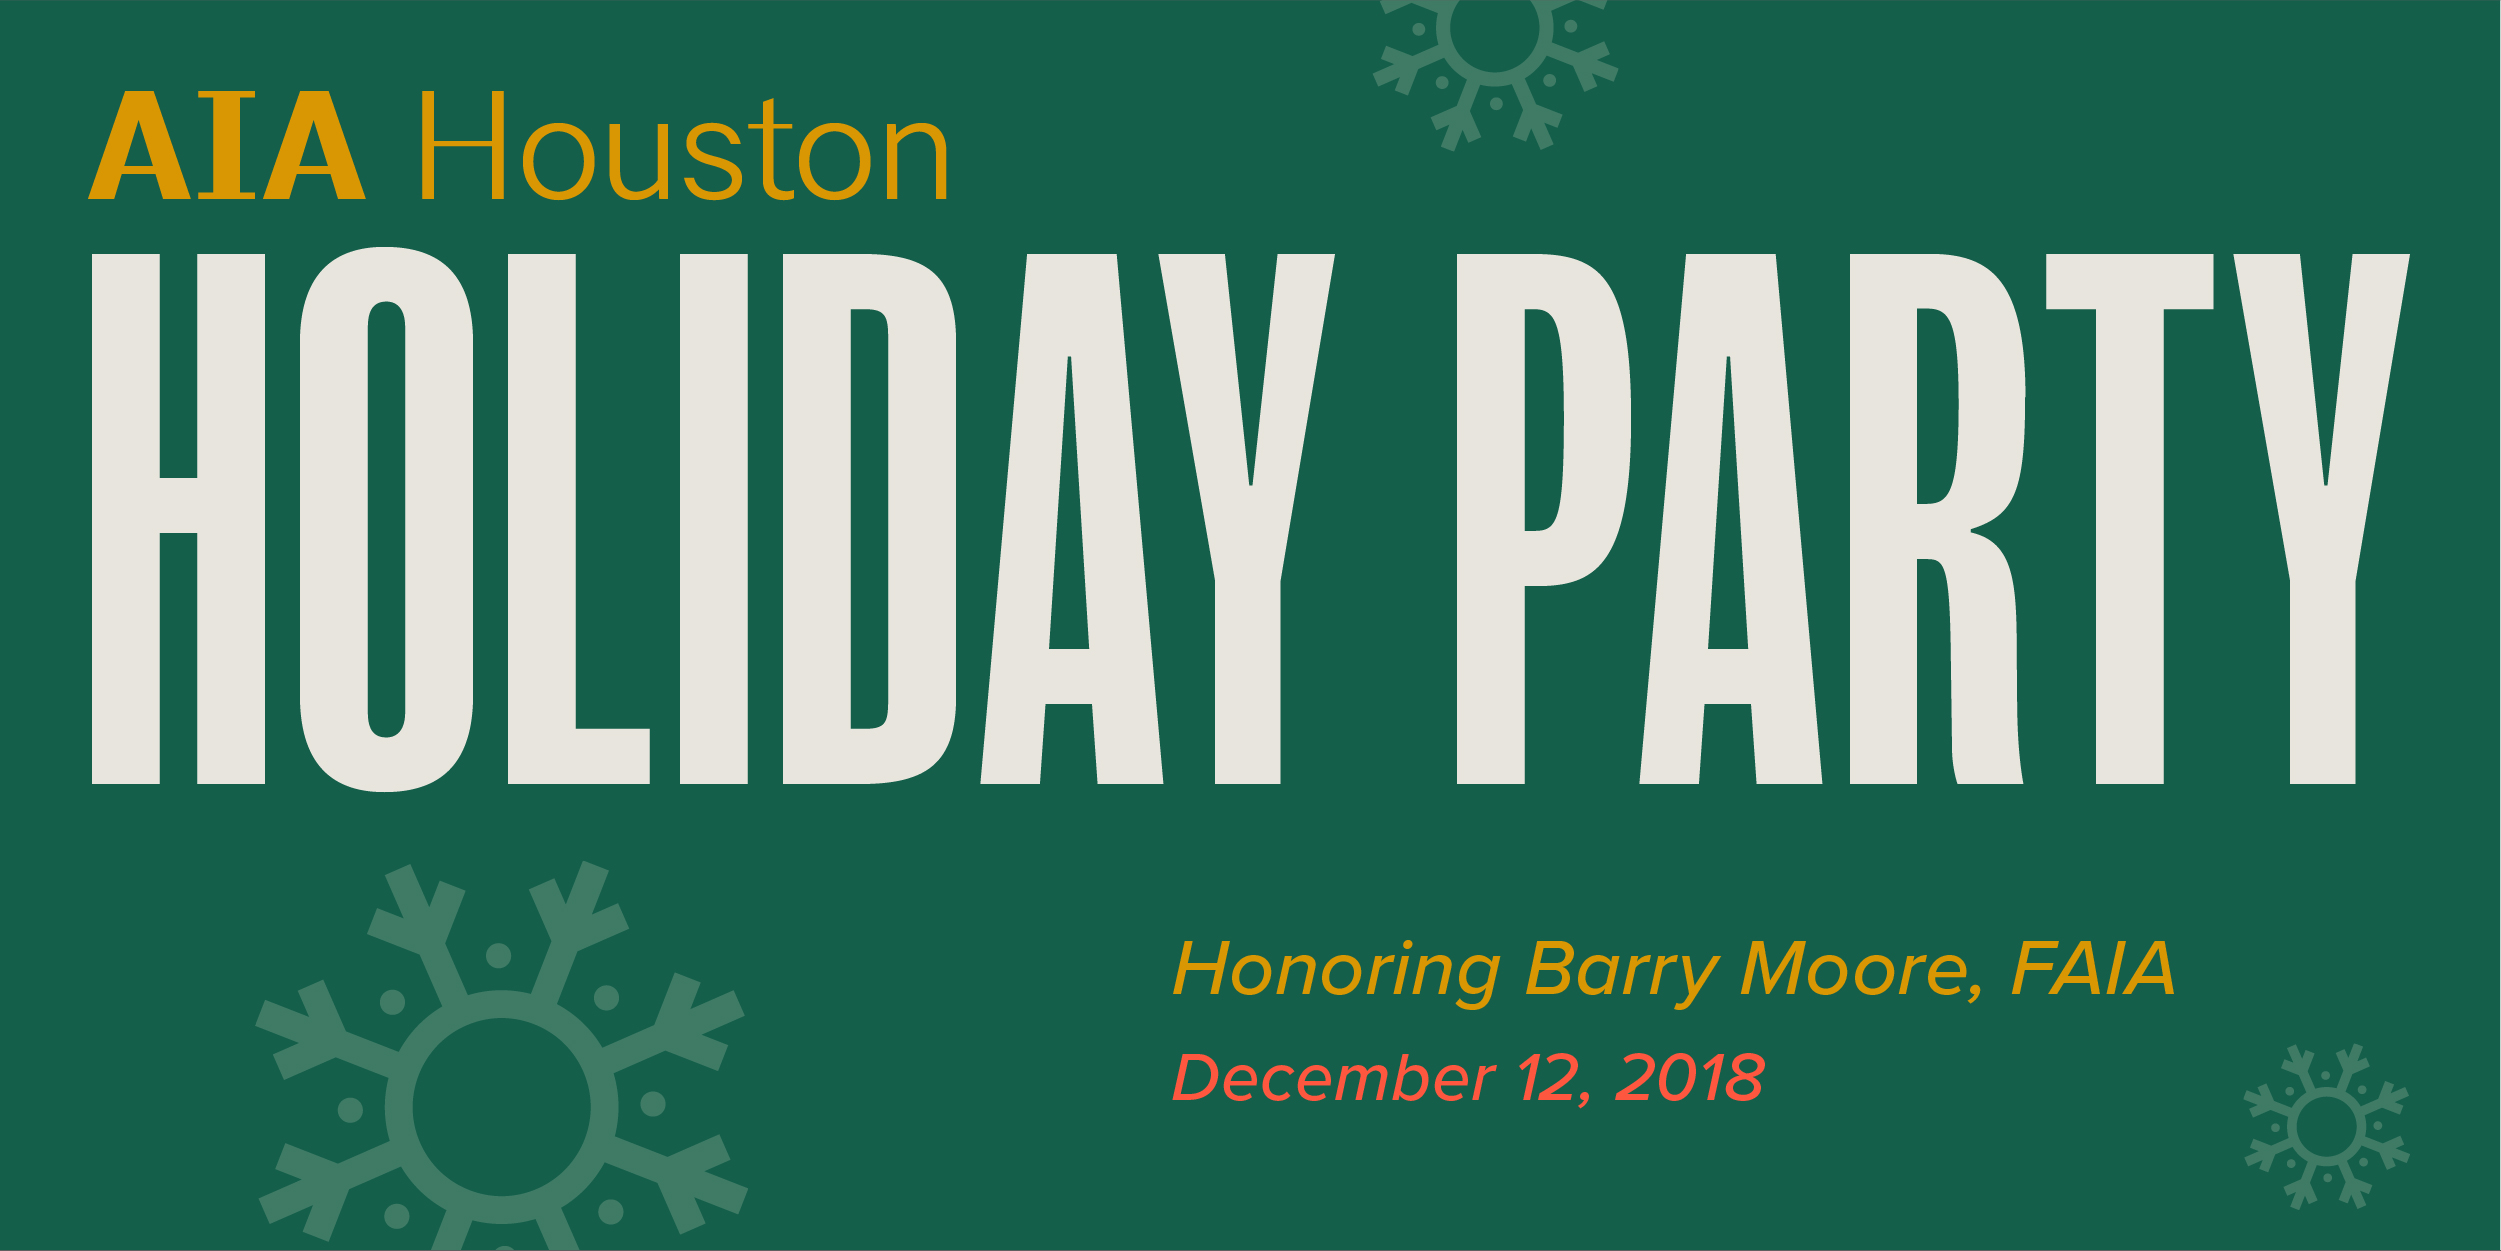 Honoring Barry Moore at AIAH Holiday Party @ Museum of Fine Arts Houston | Houston | Texas | United States